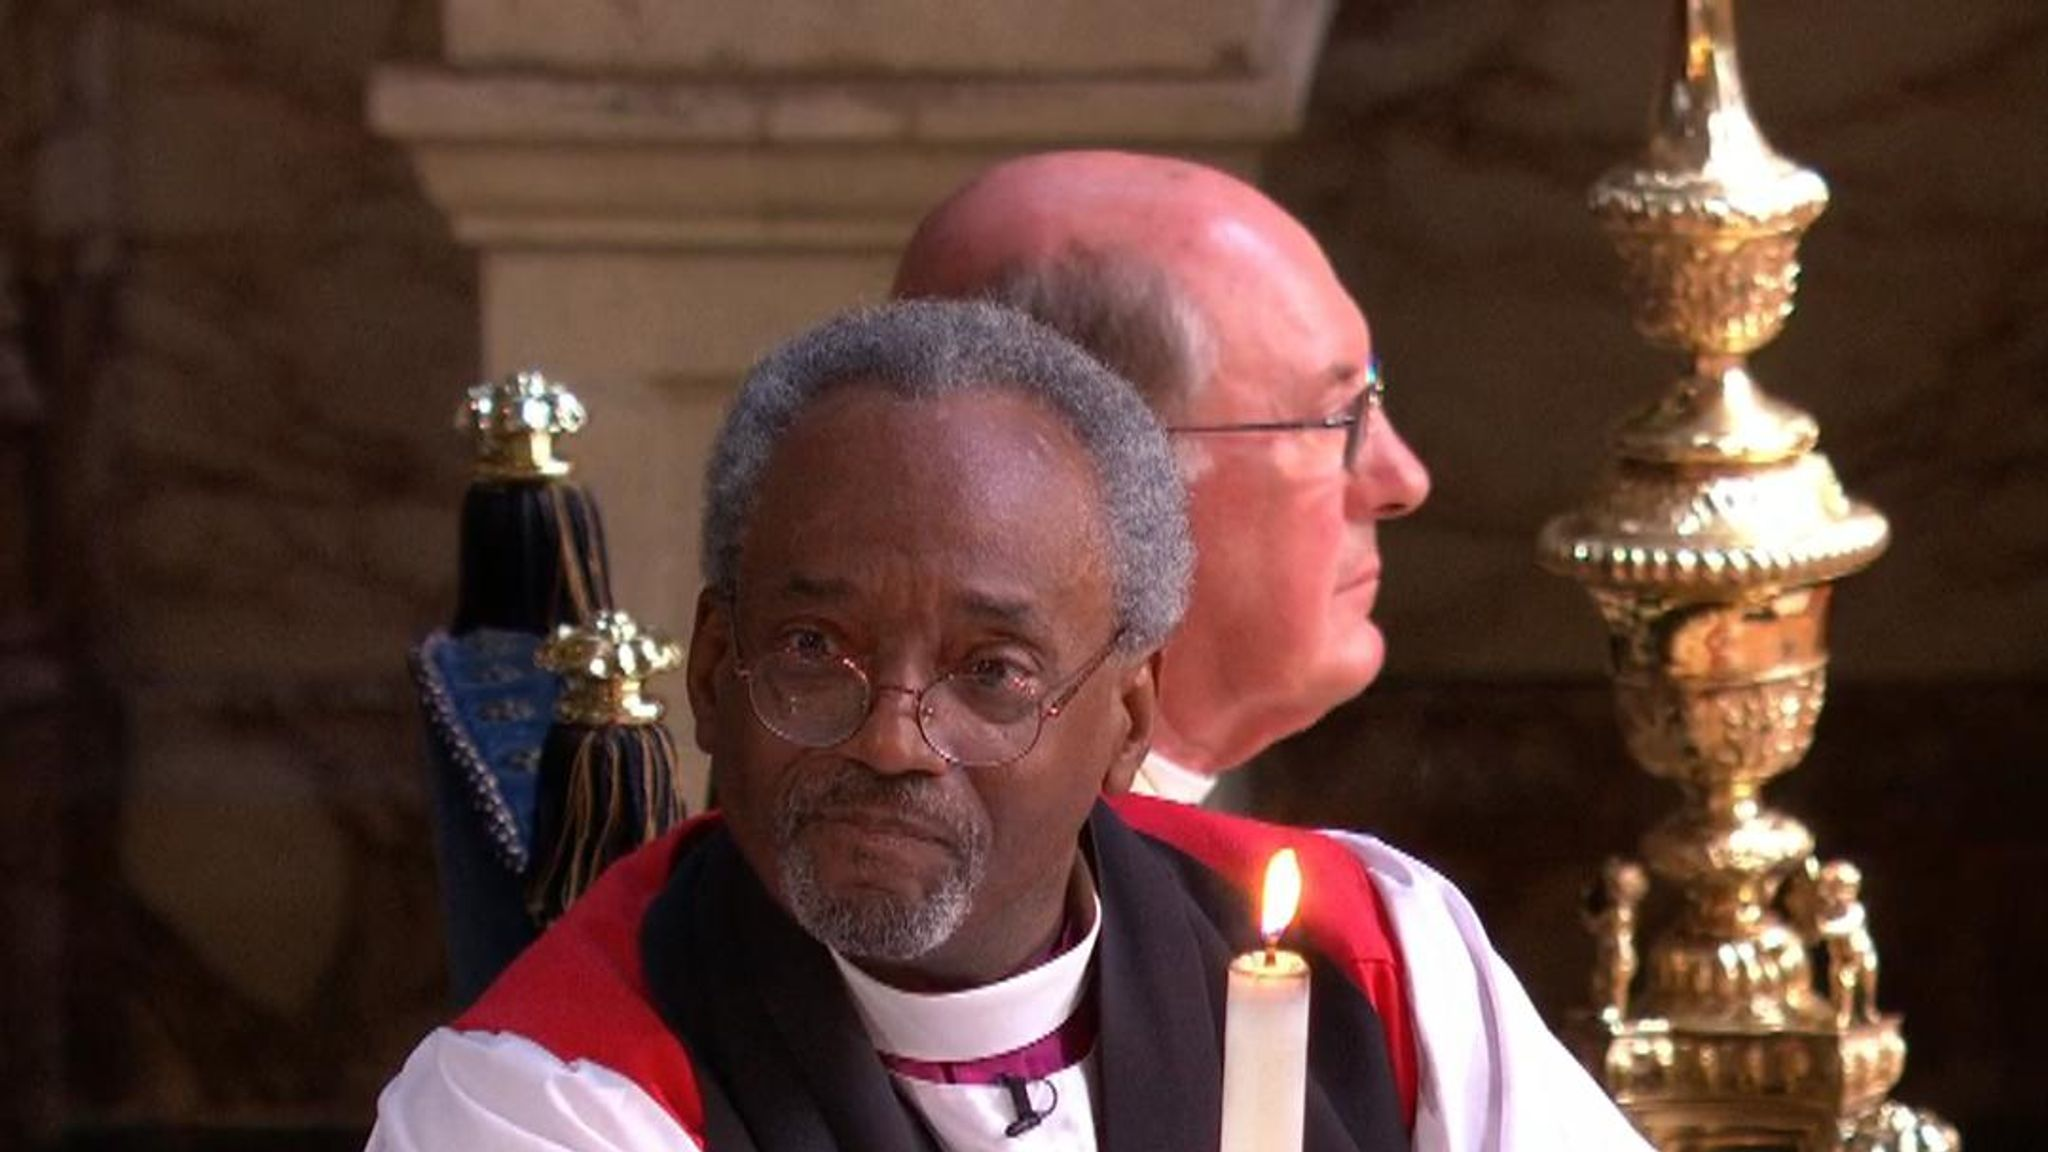 Black Preacher At Royal Wedding.Michael Curry The Passionate Bishop Who Dazzled The Wedding